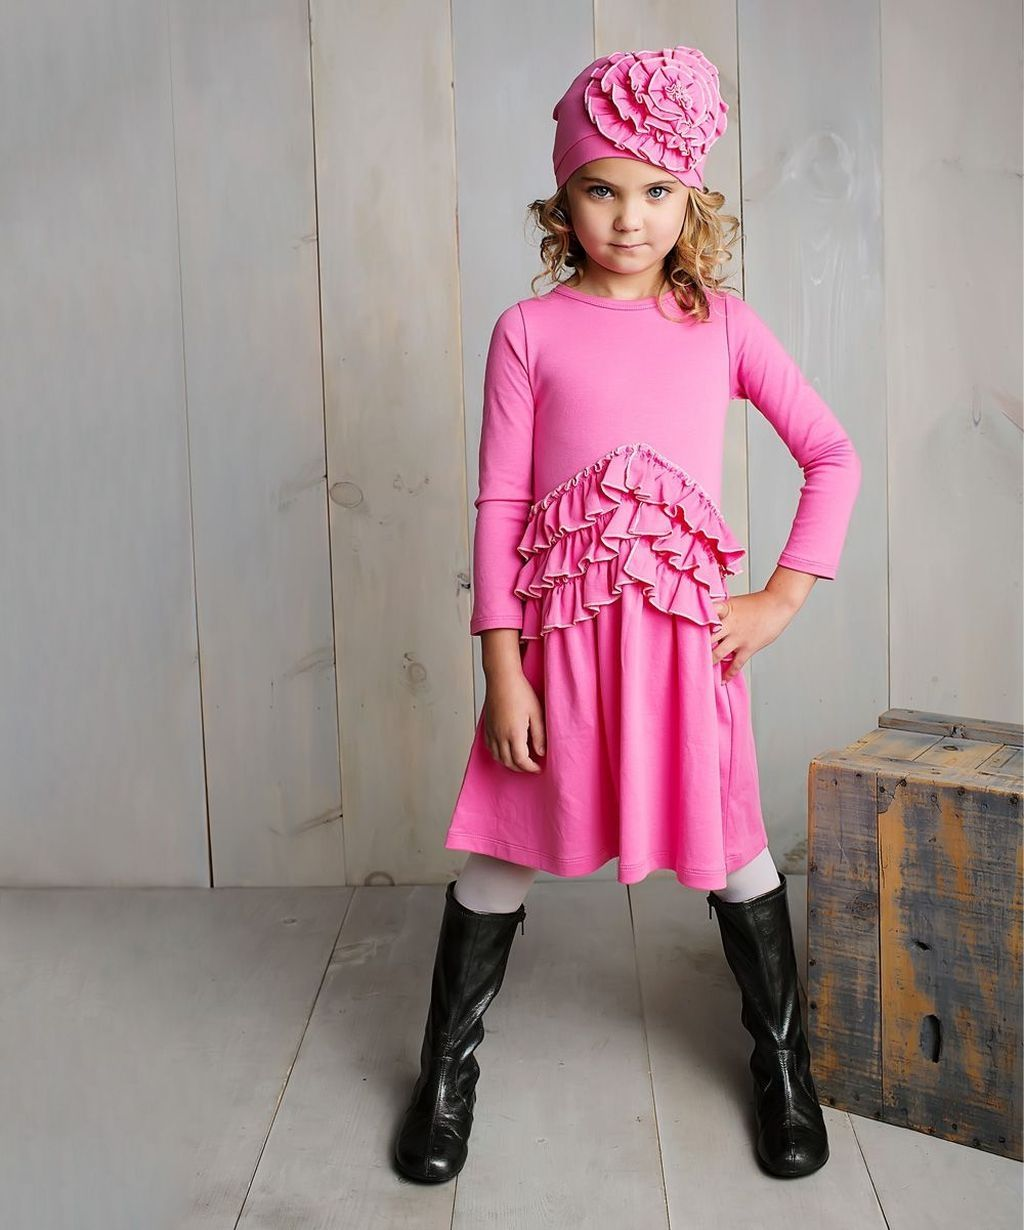 c98d2cf35666 37 Charming Kids Winter Dress Ideas Christmas Gifts | Women Fashion ...